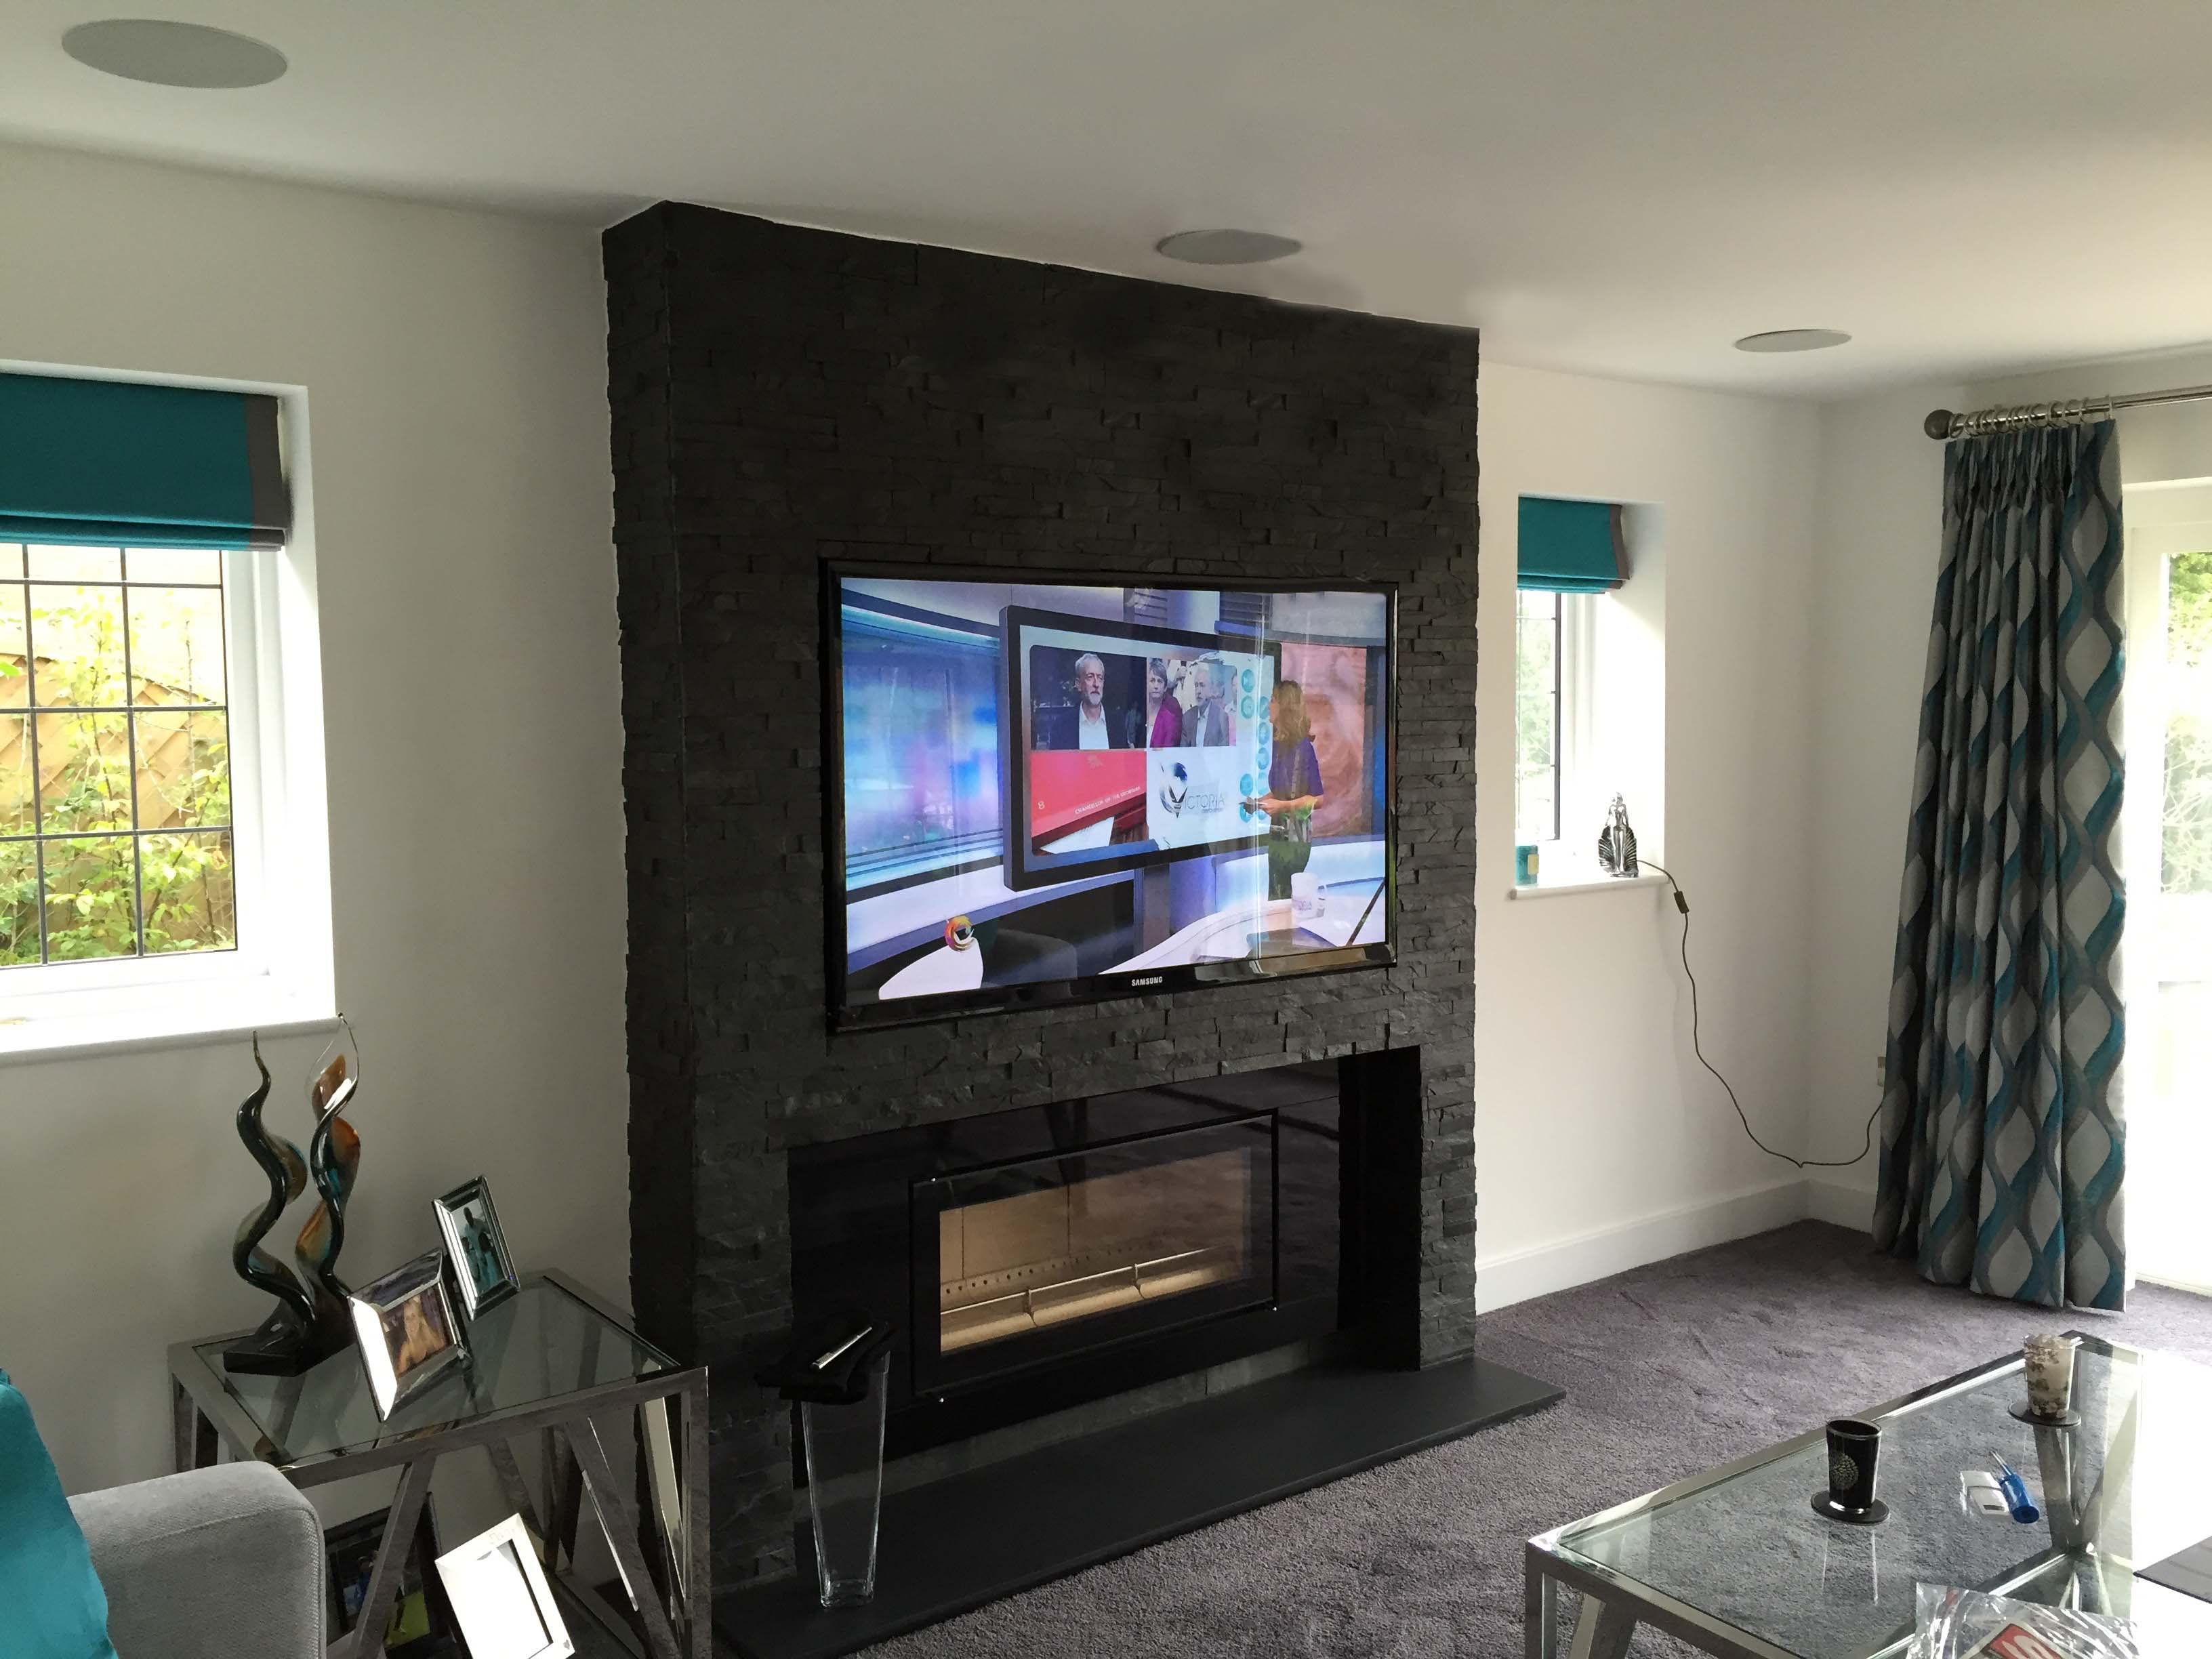 How High To Mount Tv On Wall In Bedroom Audio Visual Installation Hertfordshire New Build House